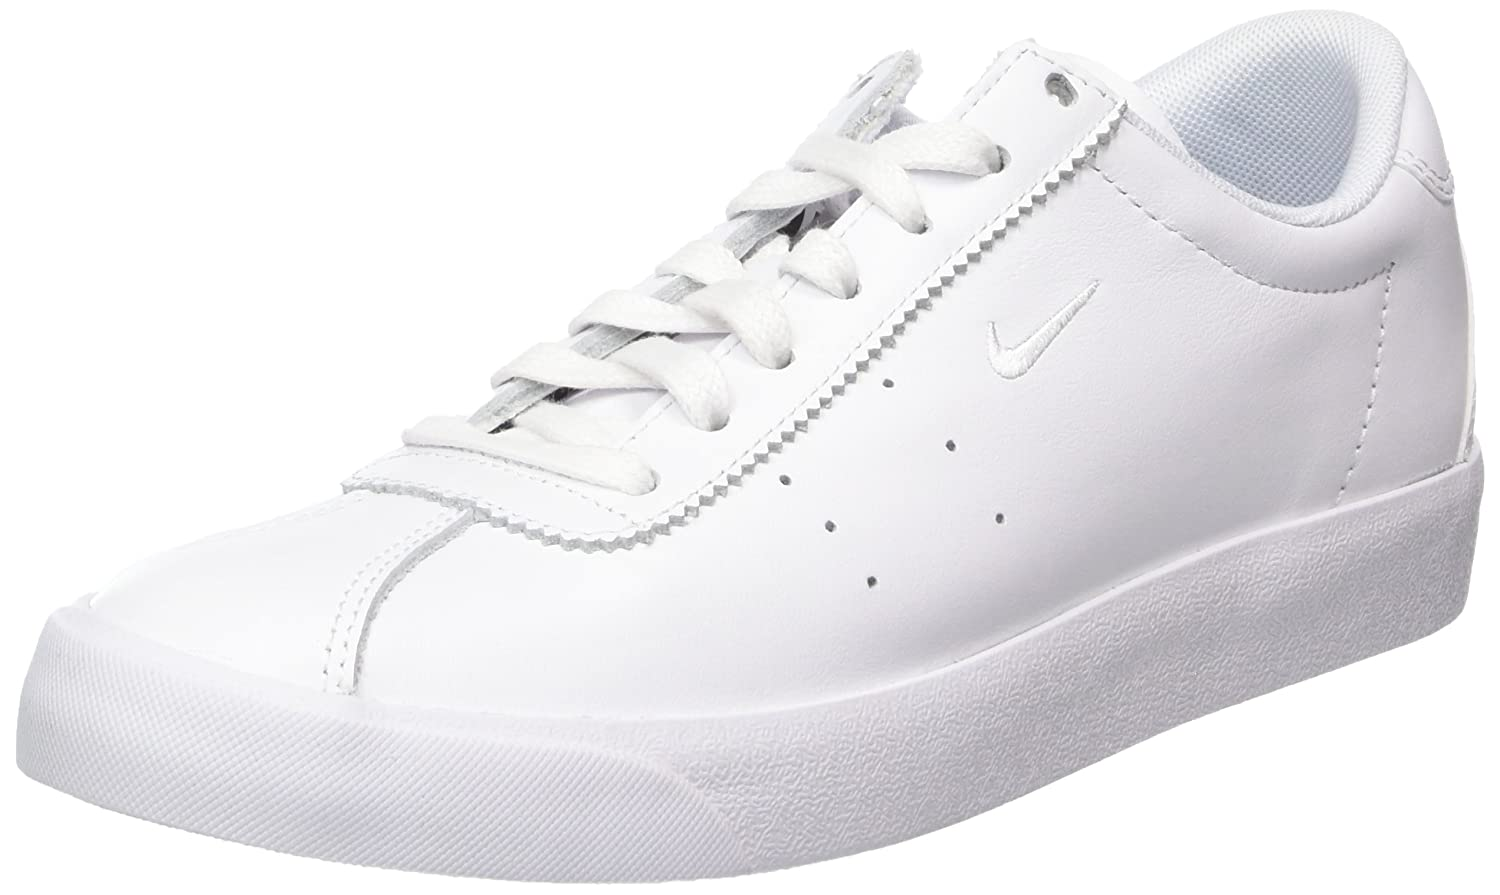 Nike Herren Match Classic Leather Sneaker  39 EU|Wei? (White)